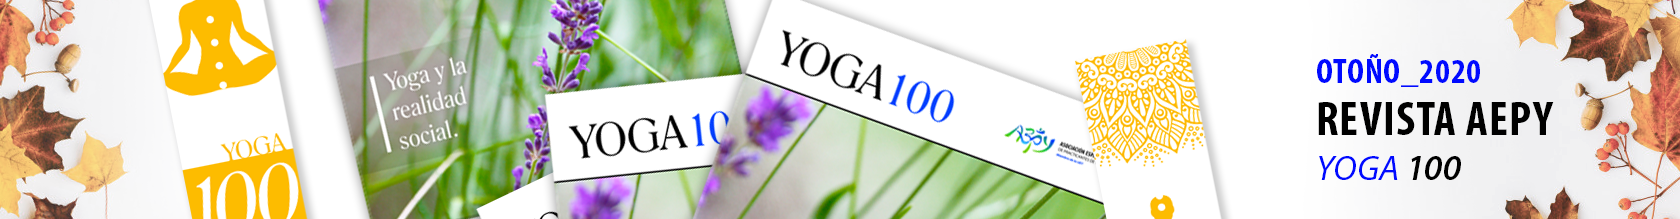 Slid-revista-de-yoga-100-AEPY-2